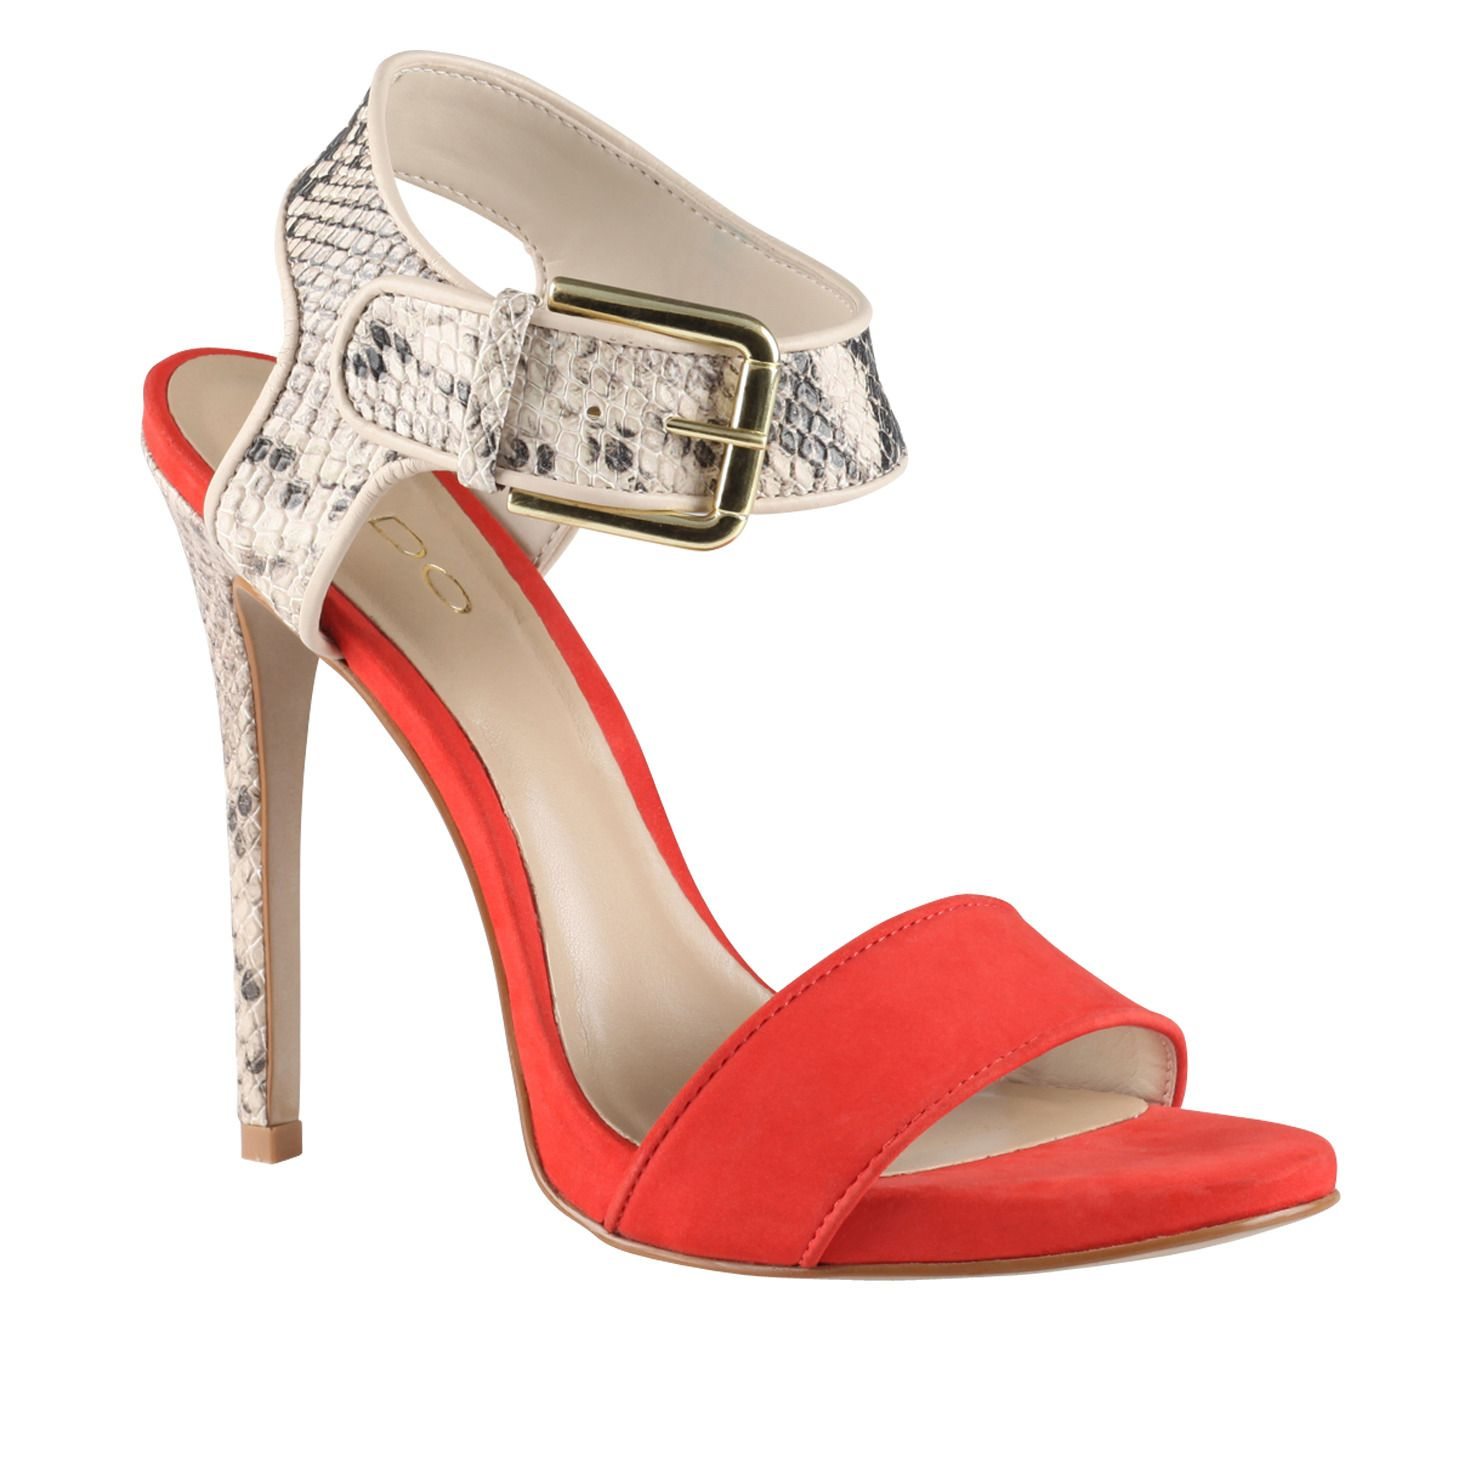 ba530f480fdd PAVLASOVA - women s high heels sandals for sale at ALDO Shoes. Smexy and on  fire!